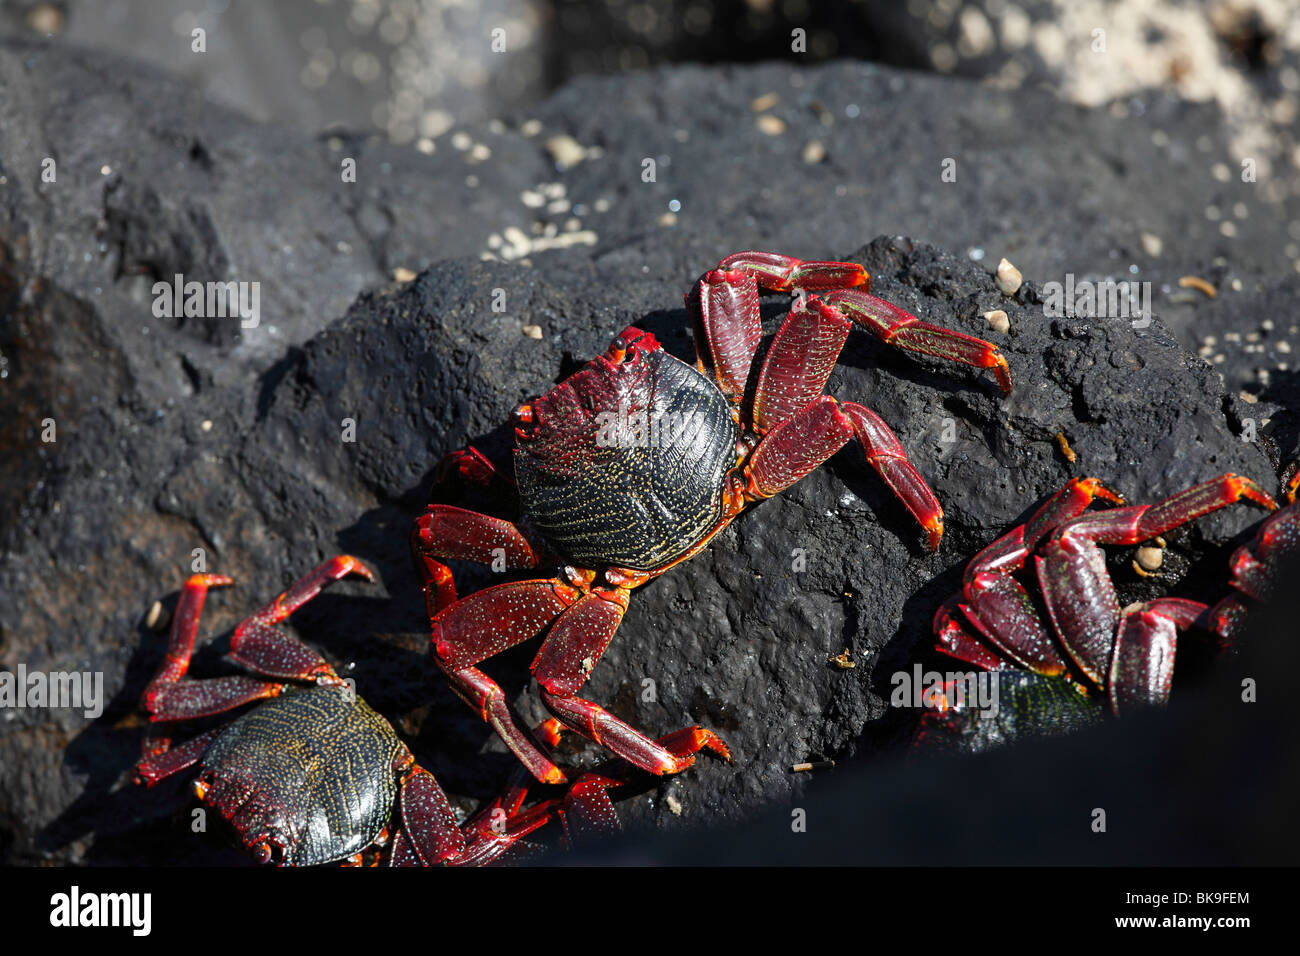 Red rock crabs, La Palma, Canary Islands, Spain - Stock Image